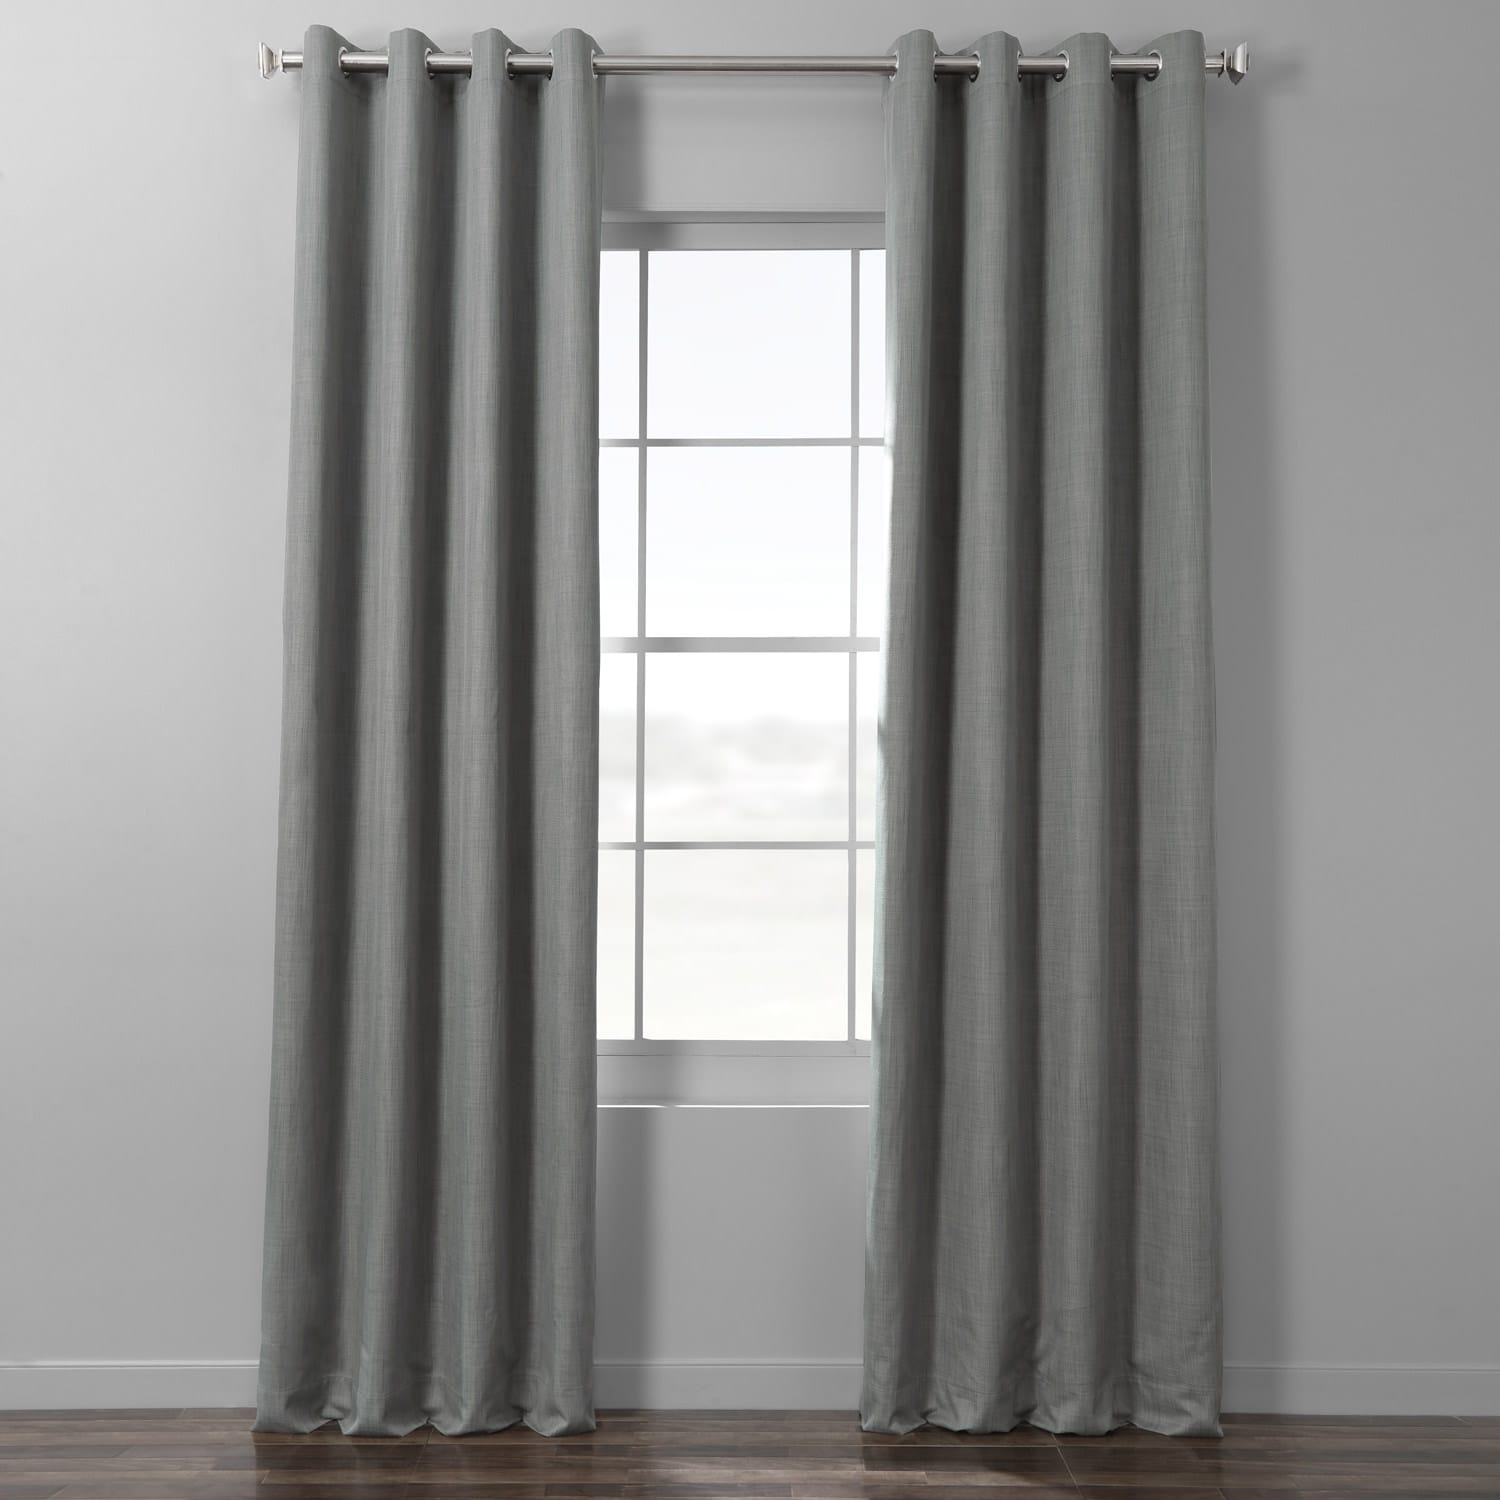 Pebble Grey Italian Textured Faux Linen Hotel Blackout Grommet Curtain